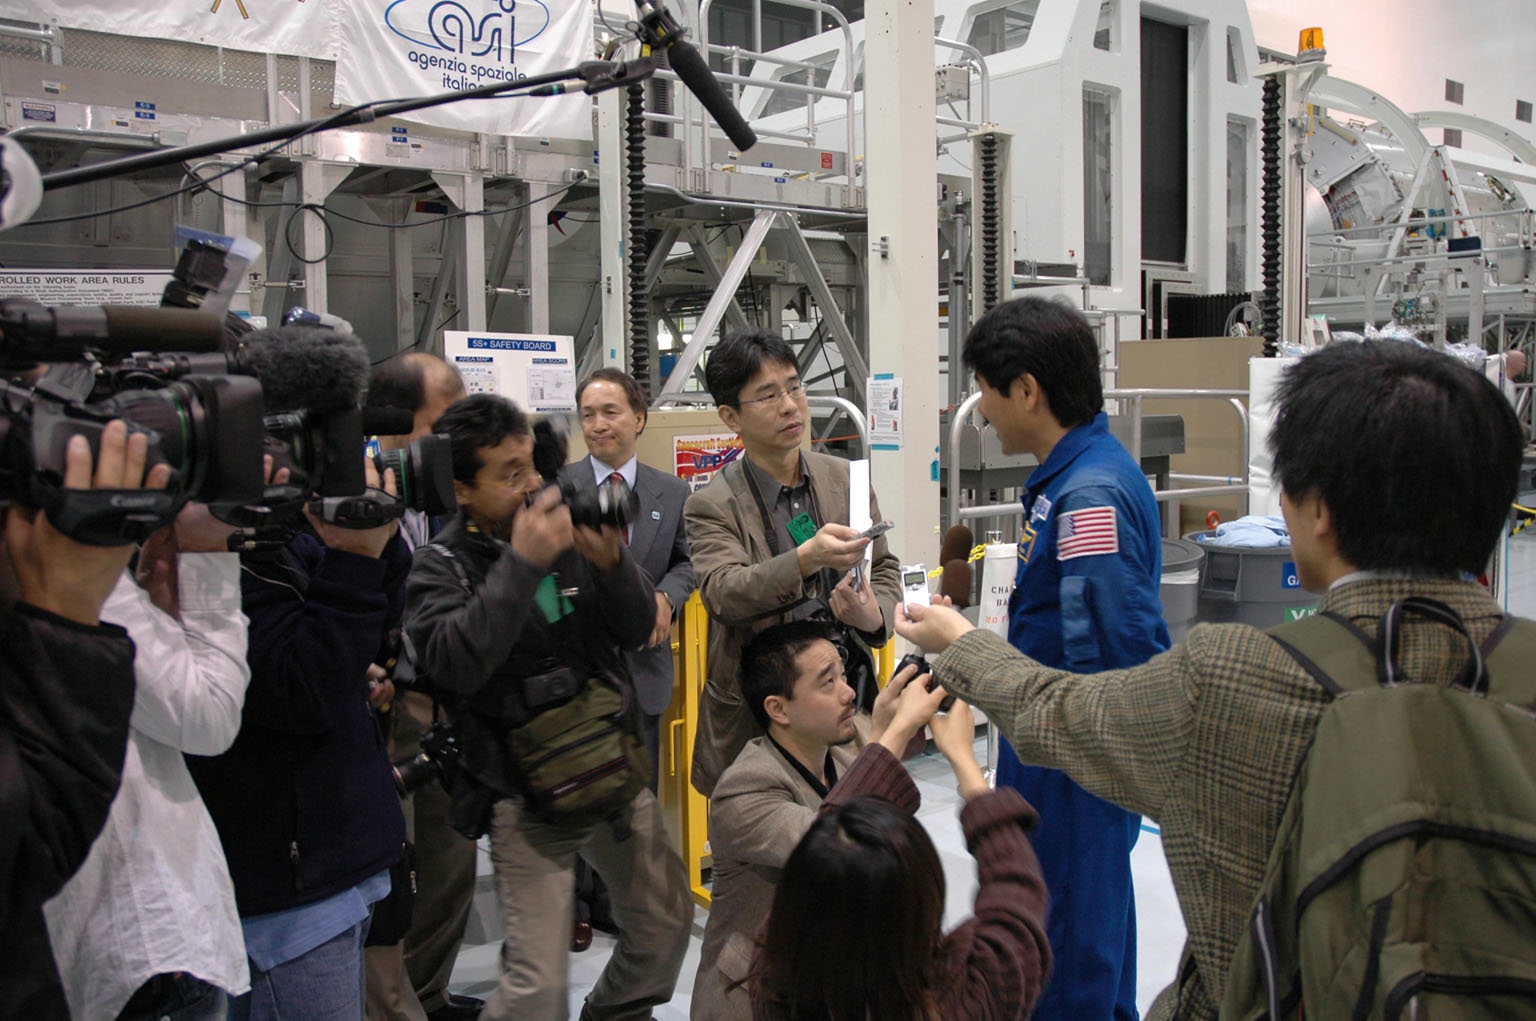 KENNEDY SPACE CENTER, FLA. -- In the Space Station Processing Facility, journalists and photographers ask Japanese astronaut Takao Doi about the Experiment Logistics Module Pressurized Section for the Japanese Experiment Module, or JEM, that he will accompany on mission STS-123 to the International Space Station. Earlier, NASA and Japanese Aerospace and Exploration Agency (JAXA) officials welcomed the arrival of the logistics module. The logistics module will serve as an on-orbit storage area for materials, tools and supplies. It can hold up to eight experiment racks and will attach to the top of another larger pressurized module. Photo credit: NASA/George Shelton